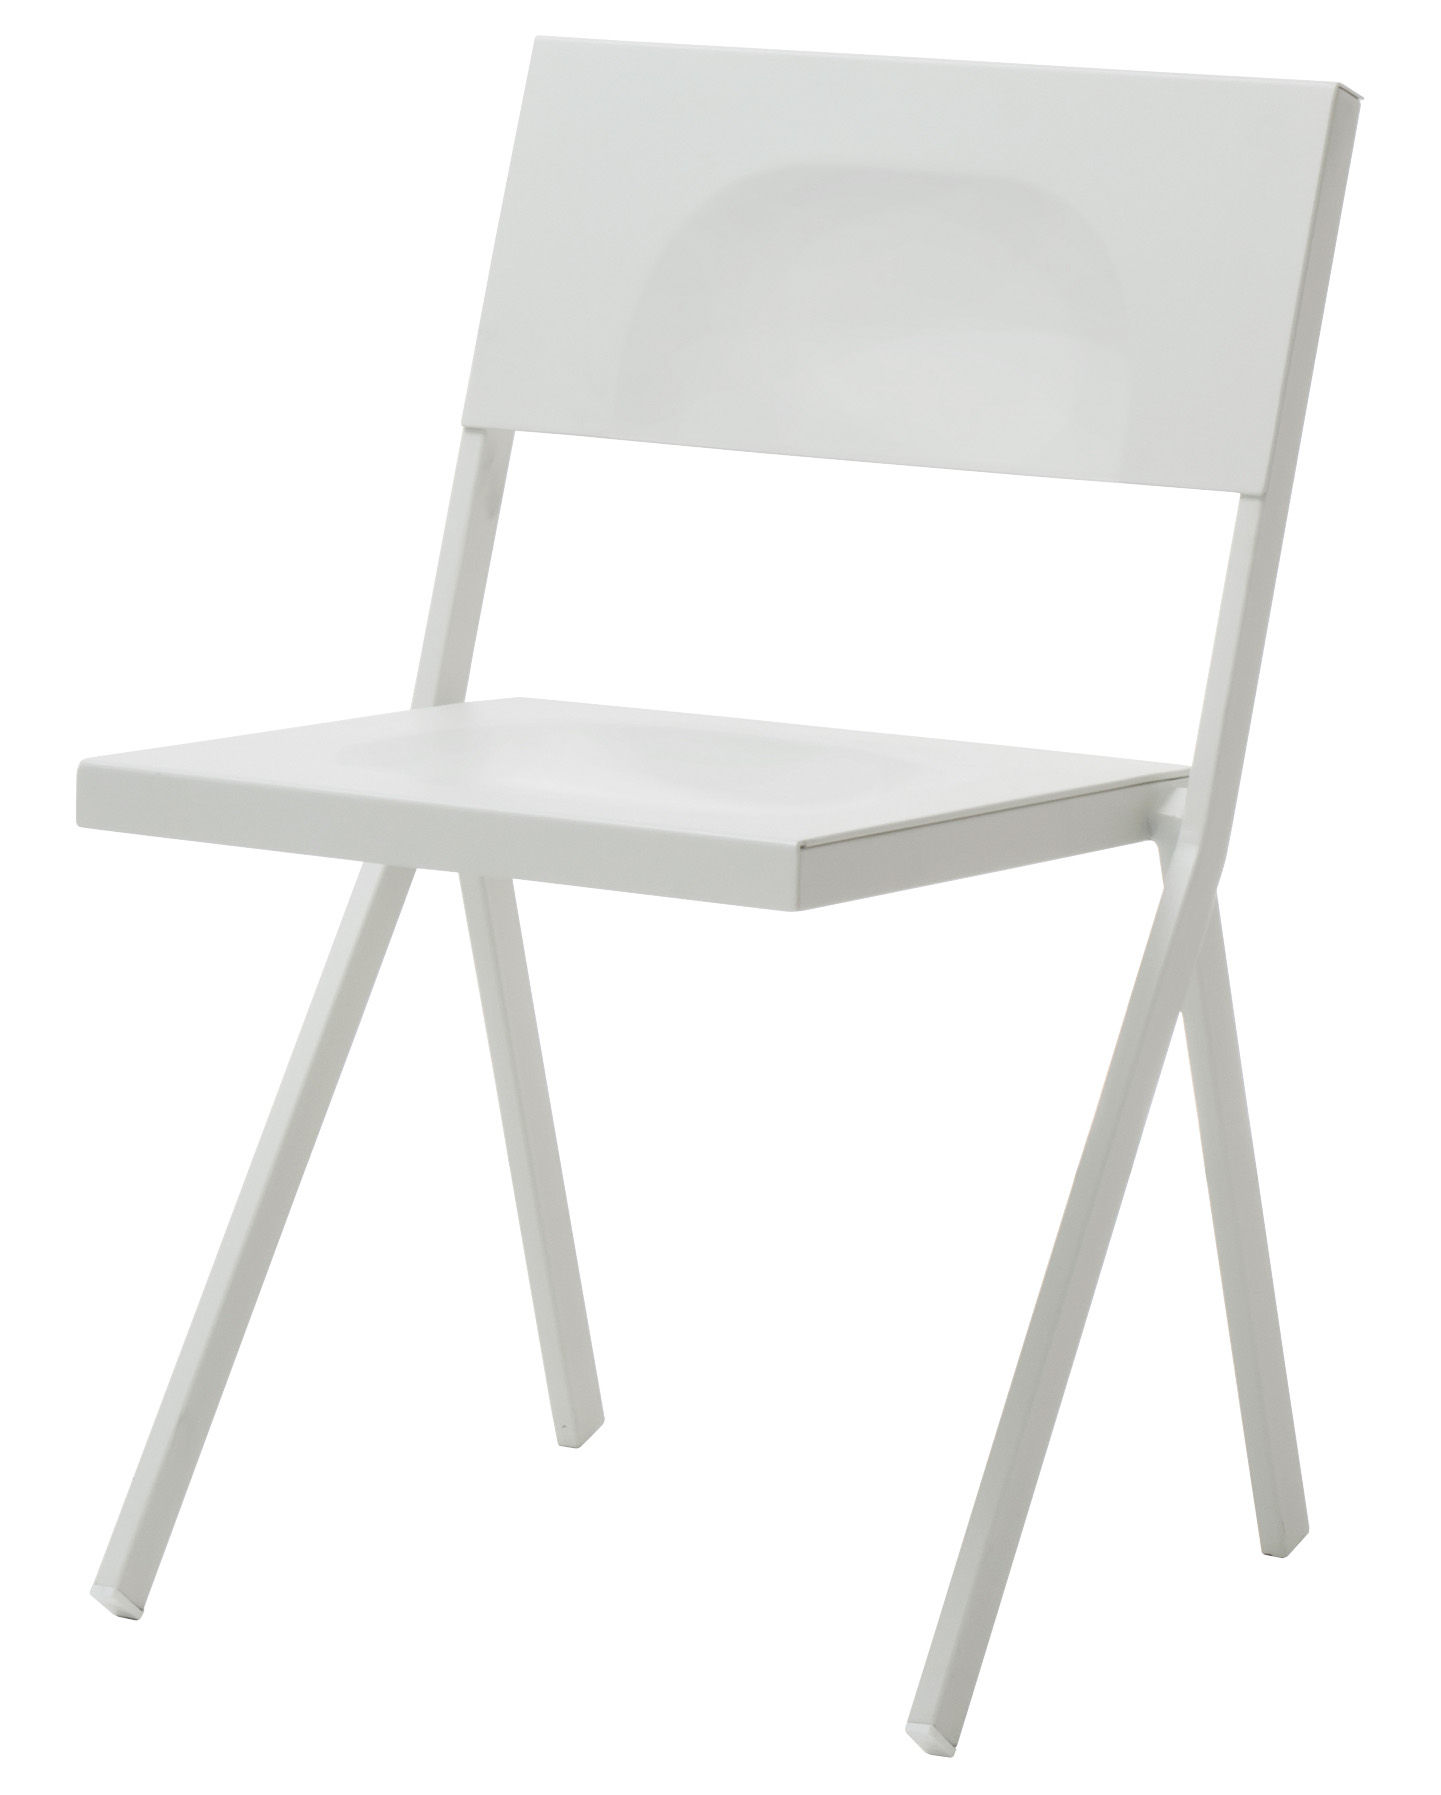 Furniture - Chairs - Mia Stacking chair - Metal by Emu - White - Aluminium, Steel